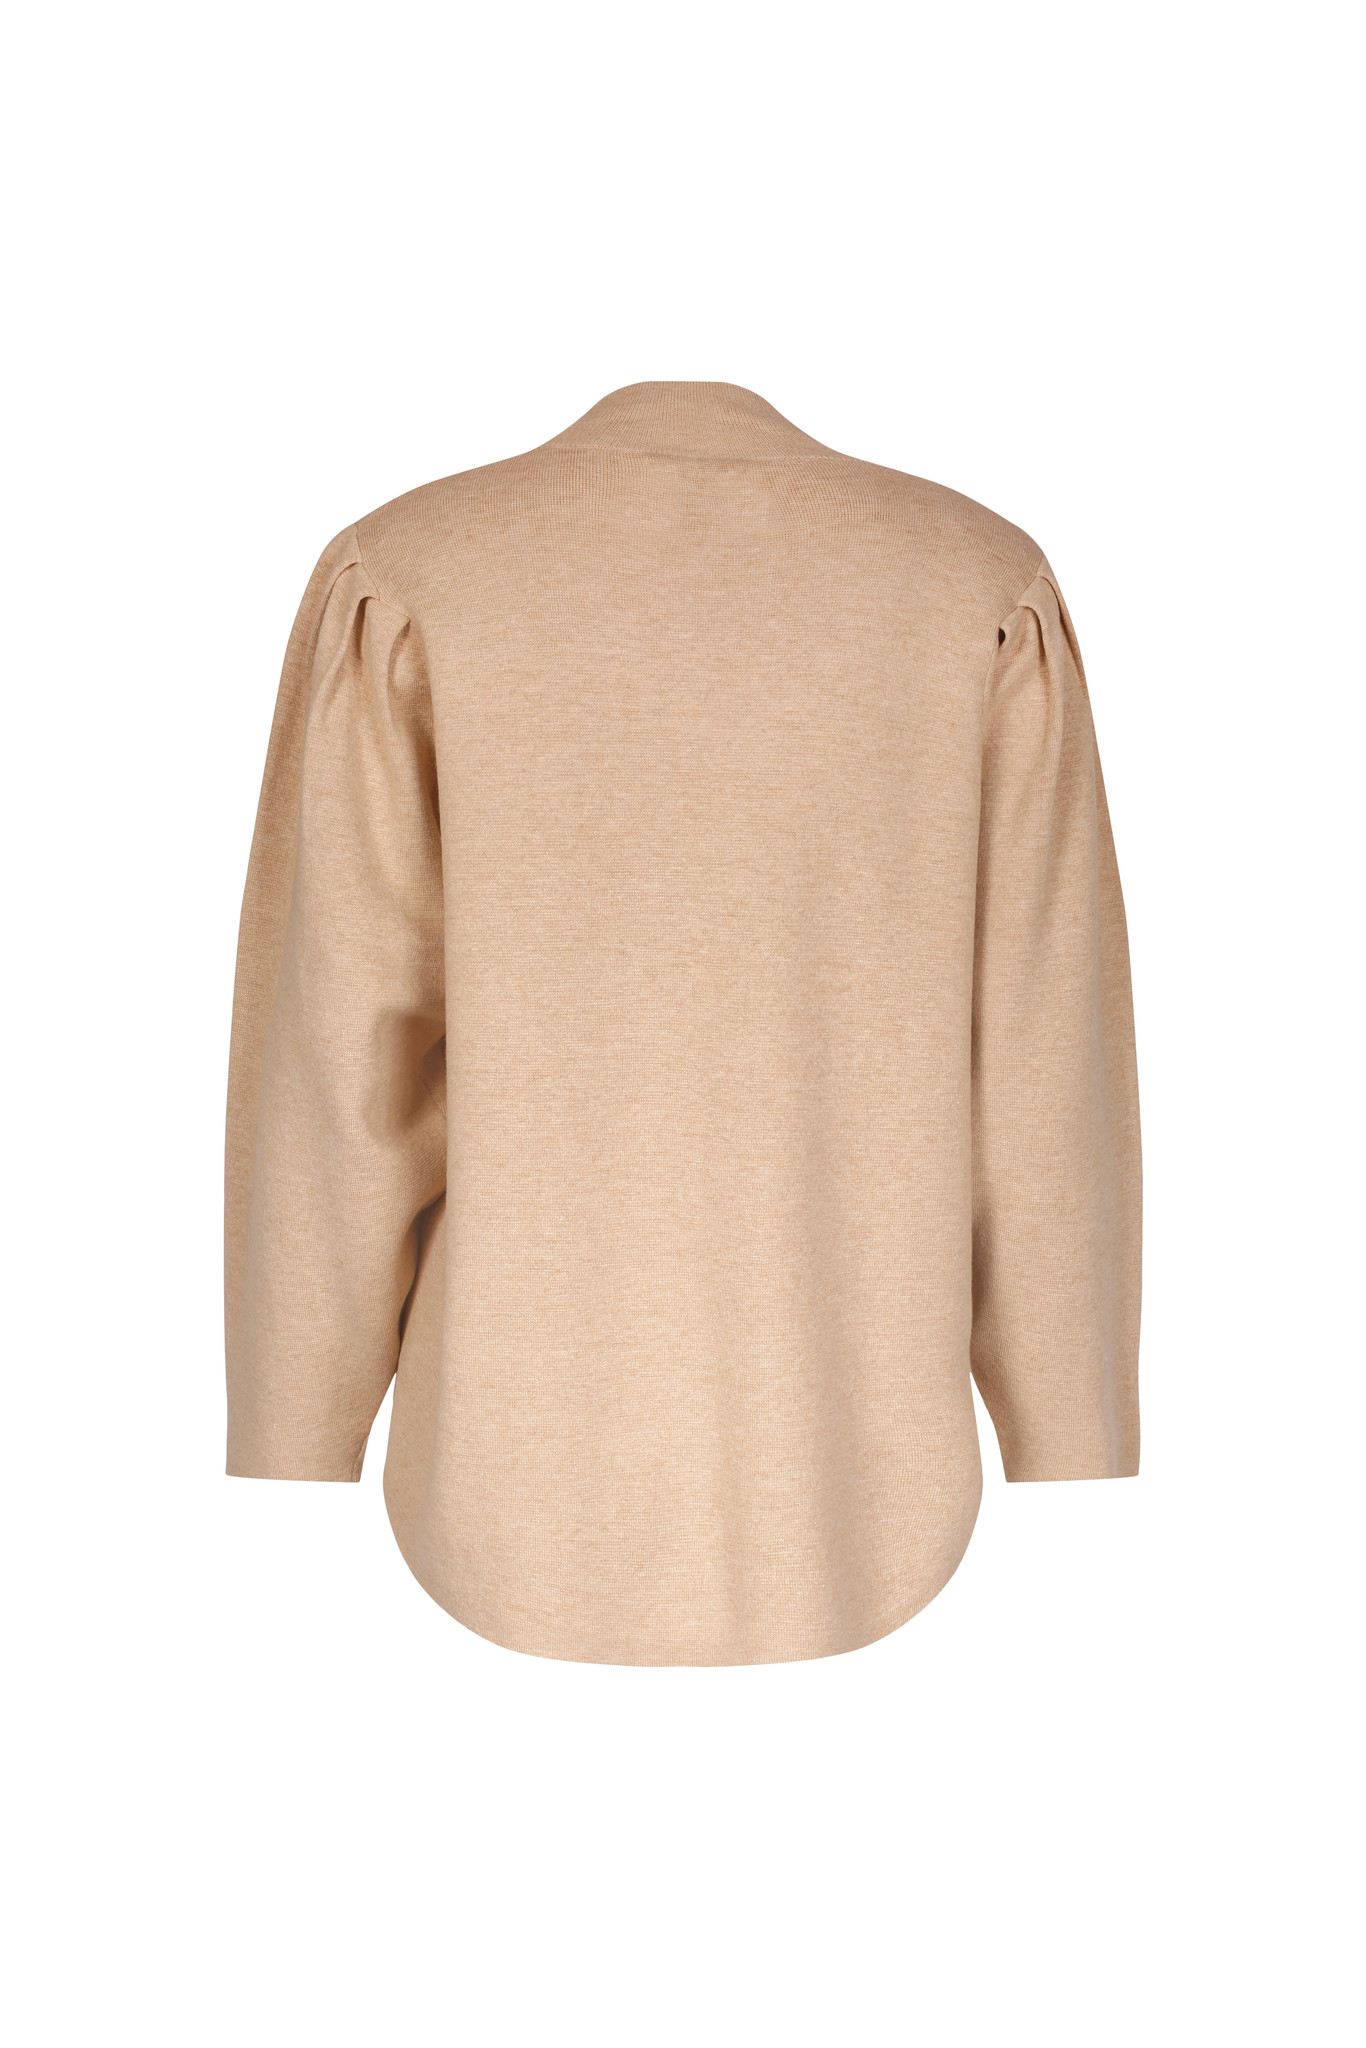 Claire Sweater - Camel Melange-2